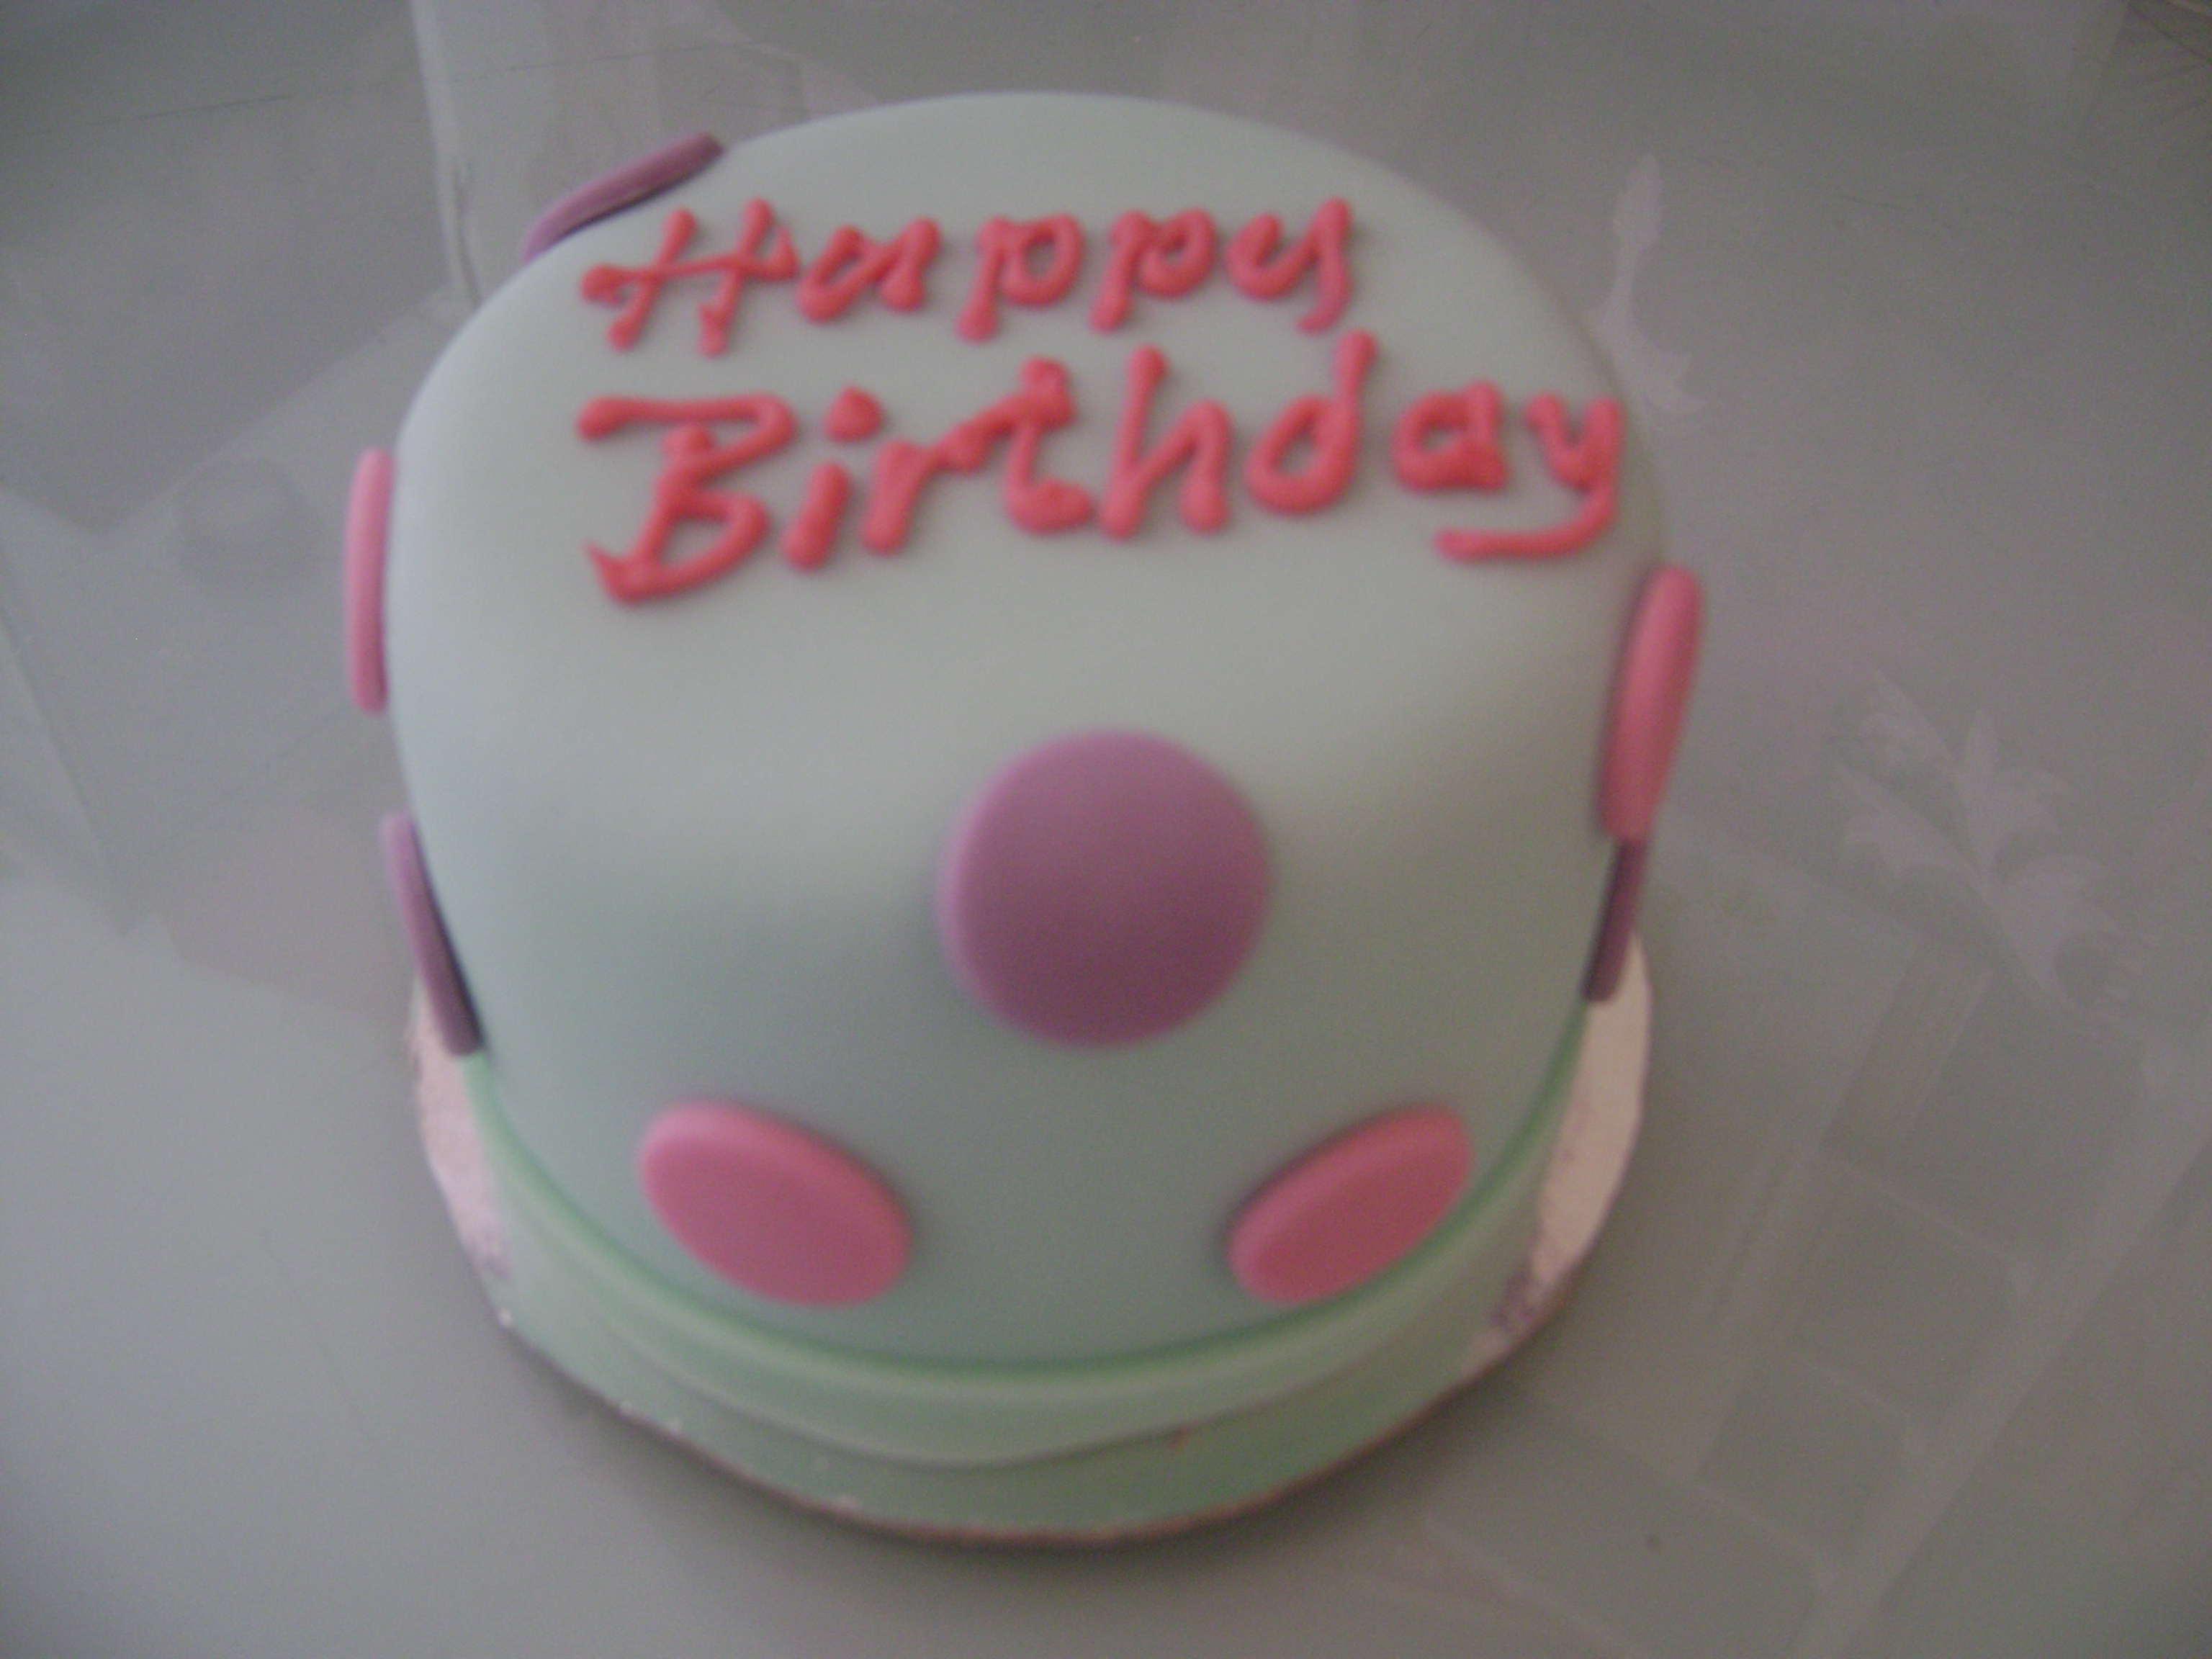 Individual Birthdayspecial Occasion Cakes For The Officeparties